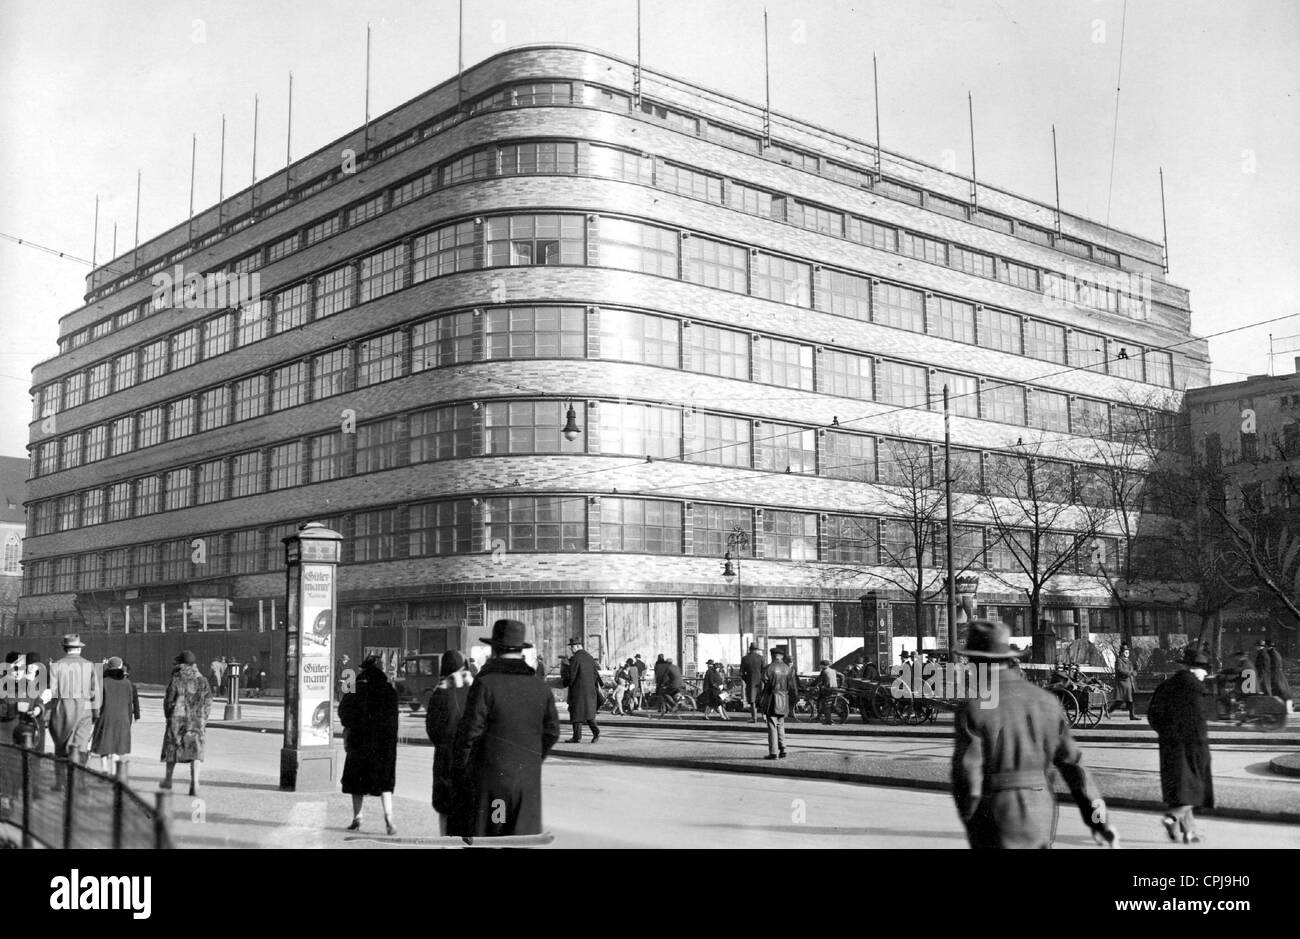 https://c8.alamy.com/comp/CPJ9H0/wertheim-department-store-in-wroclaw-1930-CPJ9H0.jpg